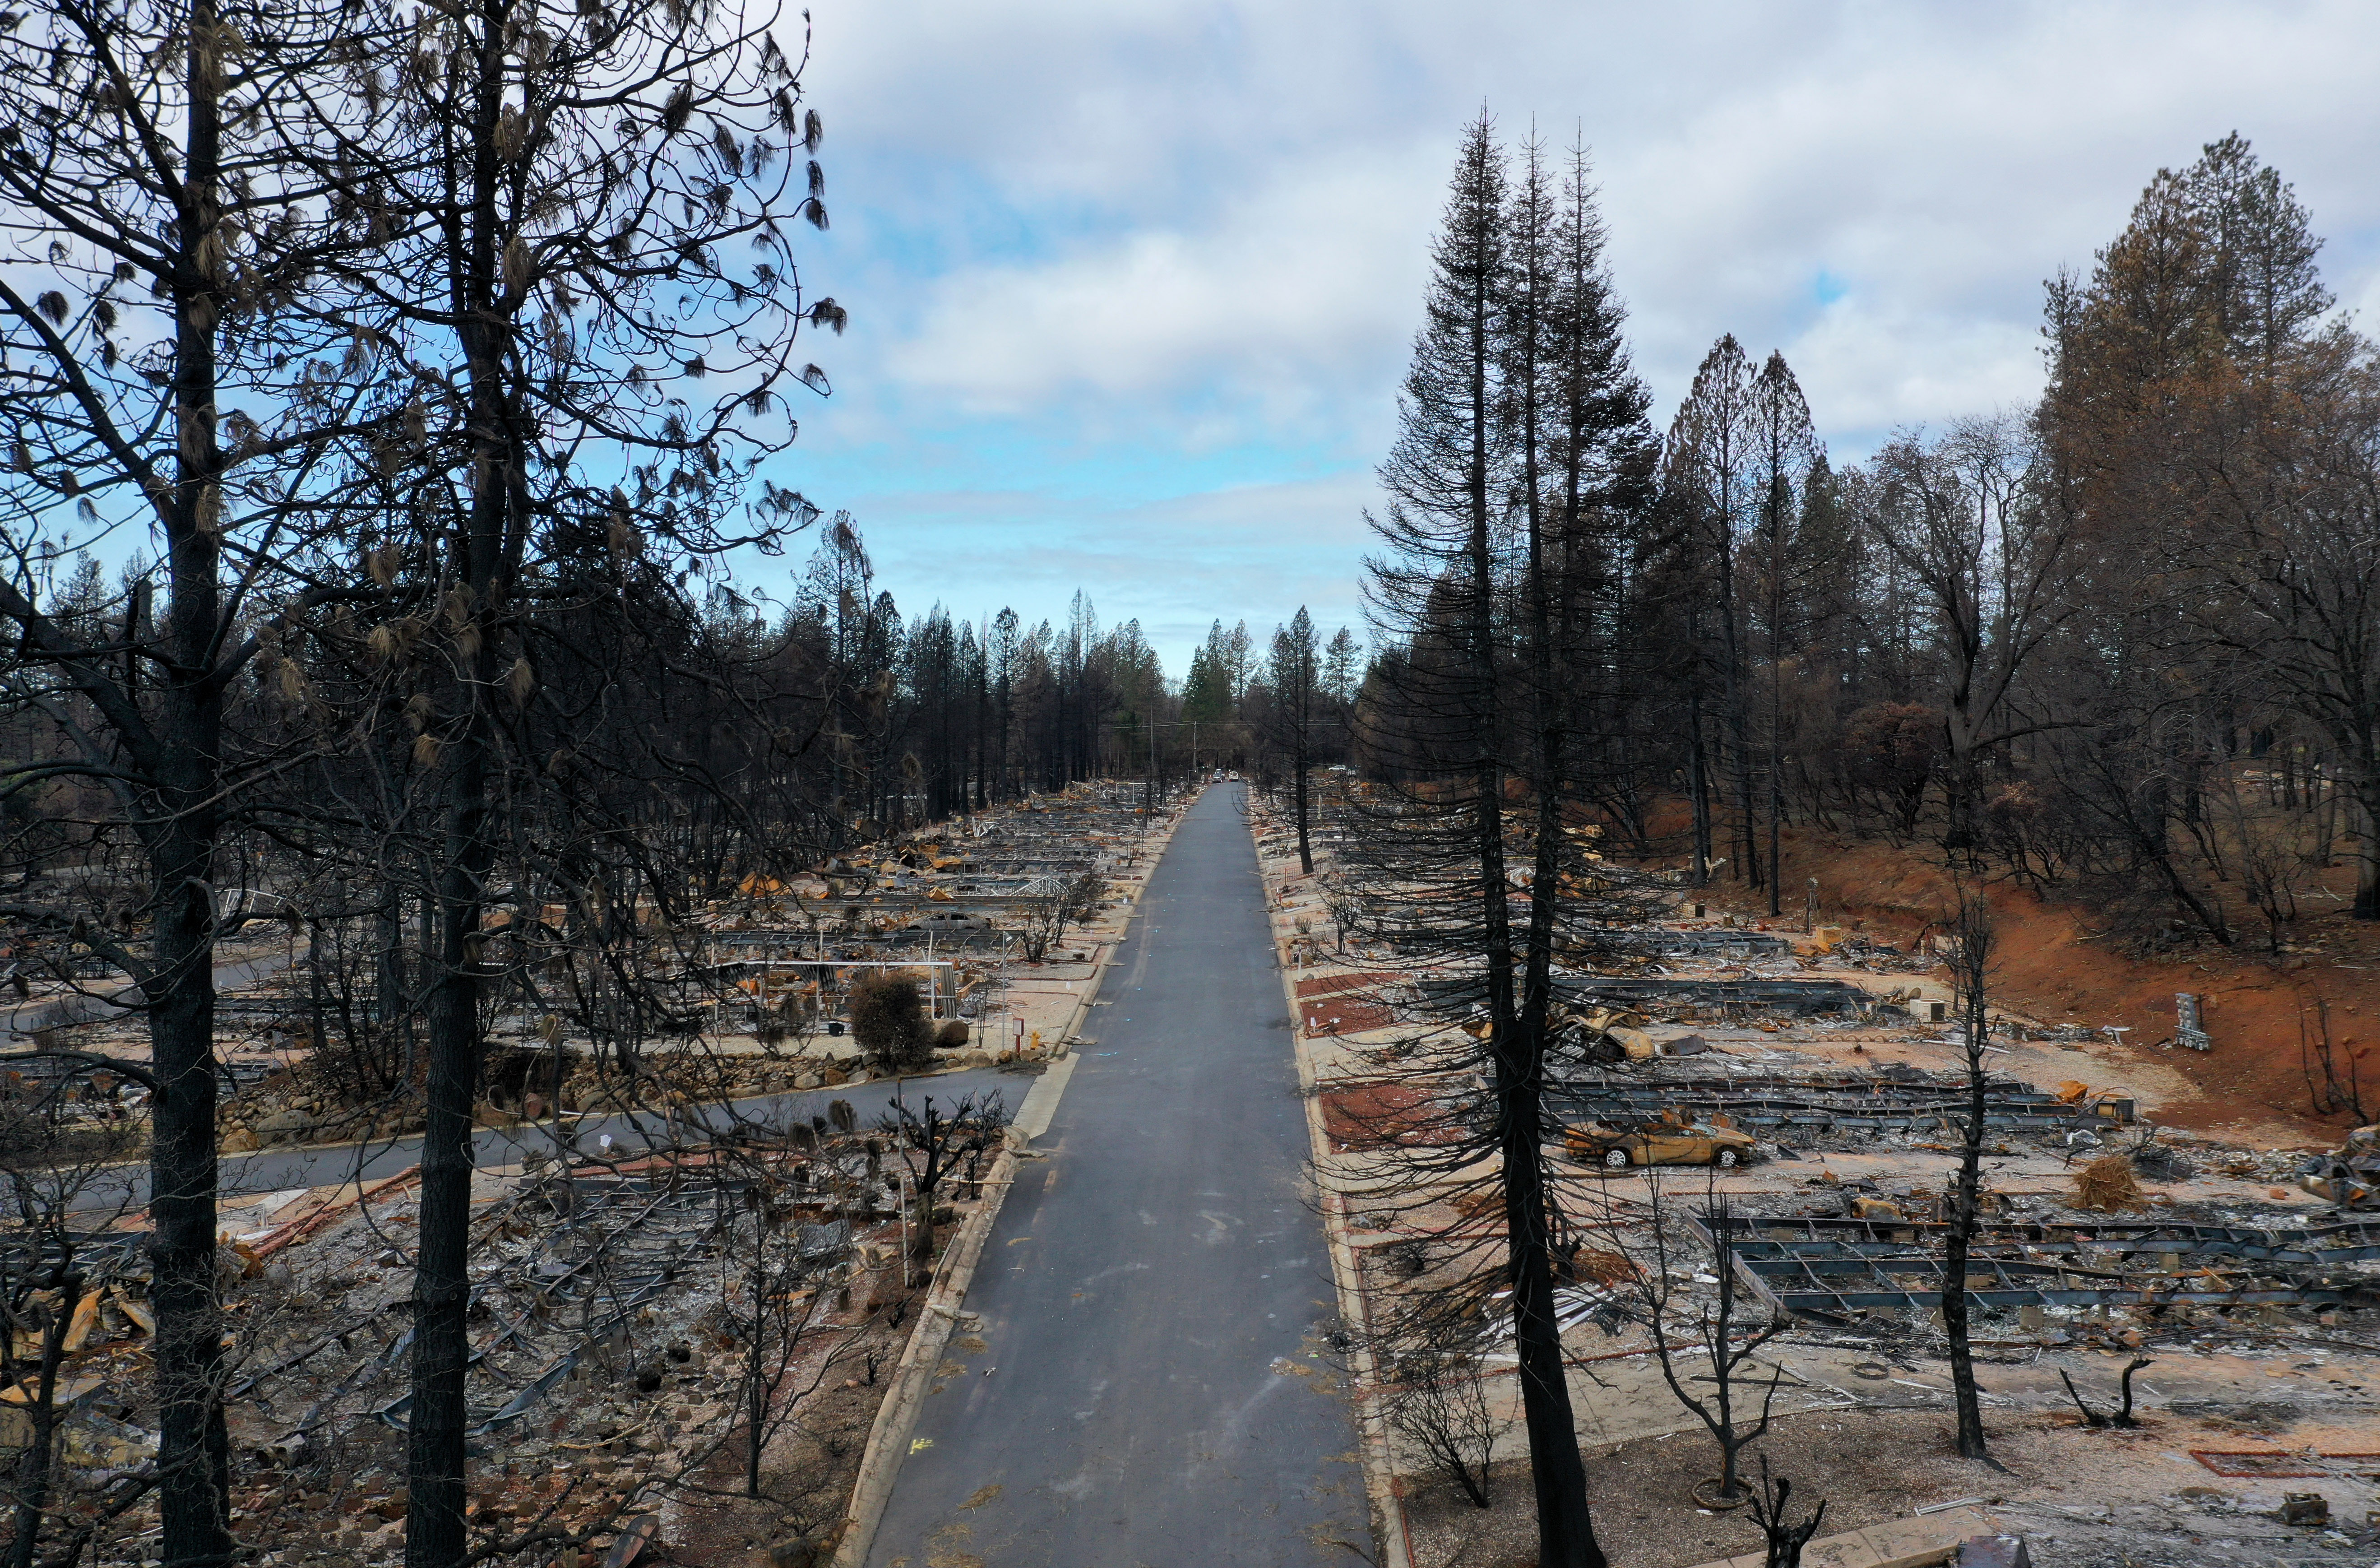 Town Of Paradise Wiped Out By The Camp Wildfire Continues Long Struggle To Rebuild